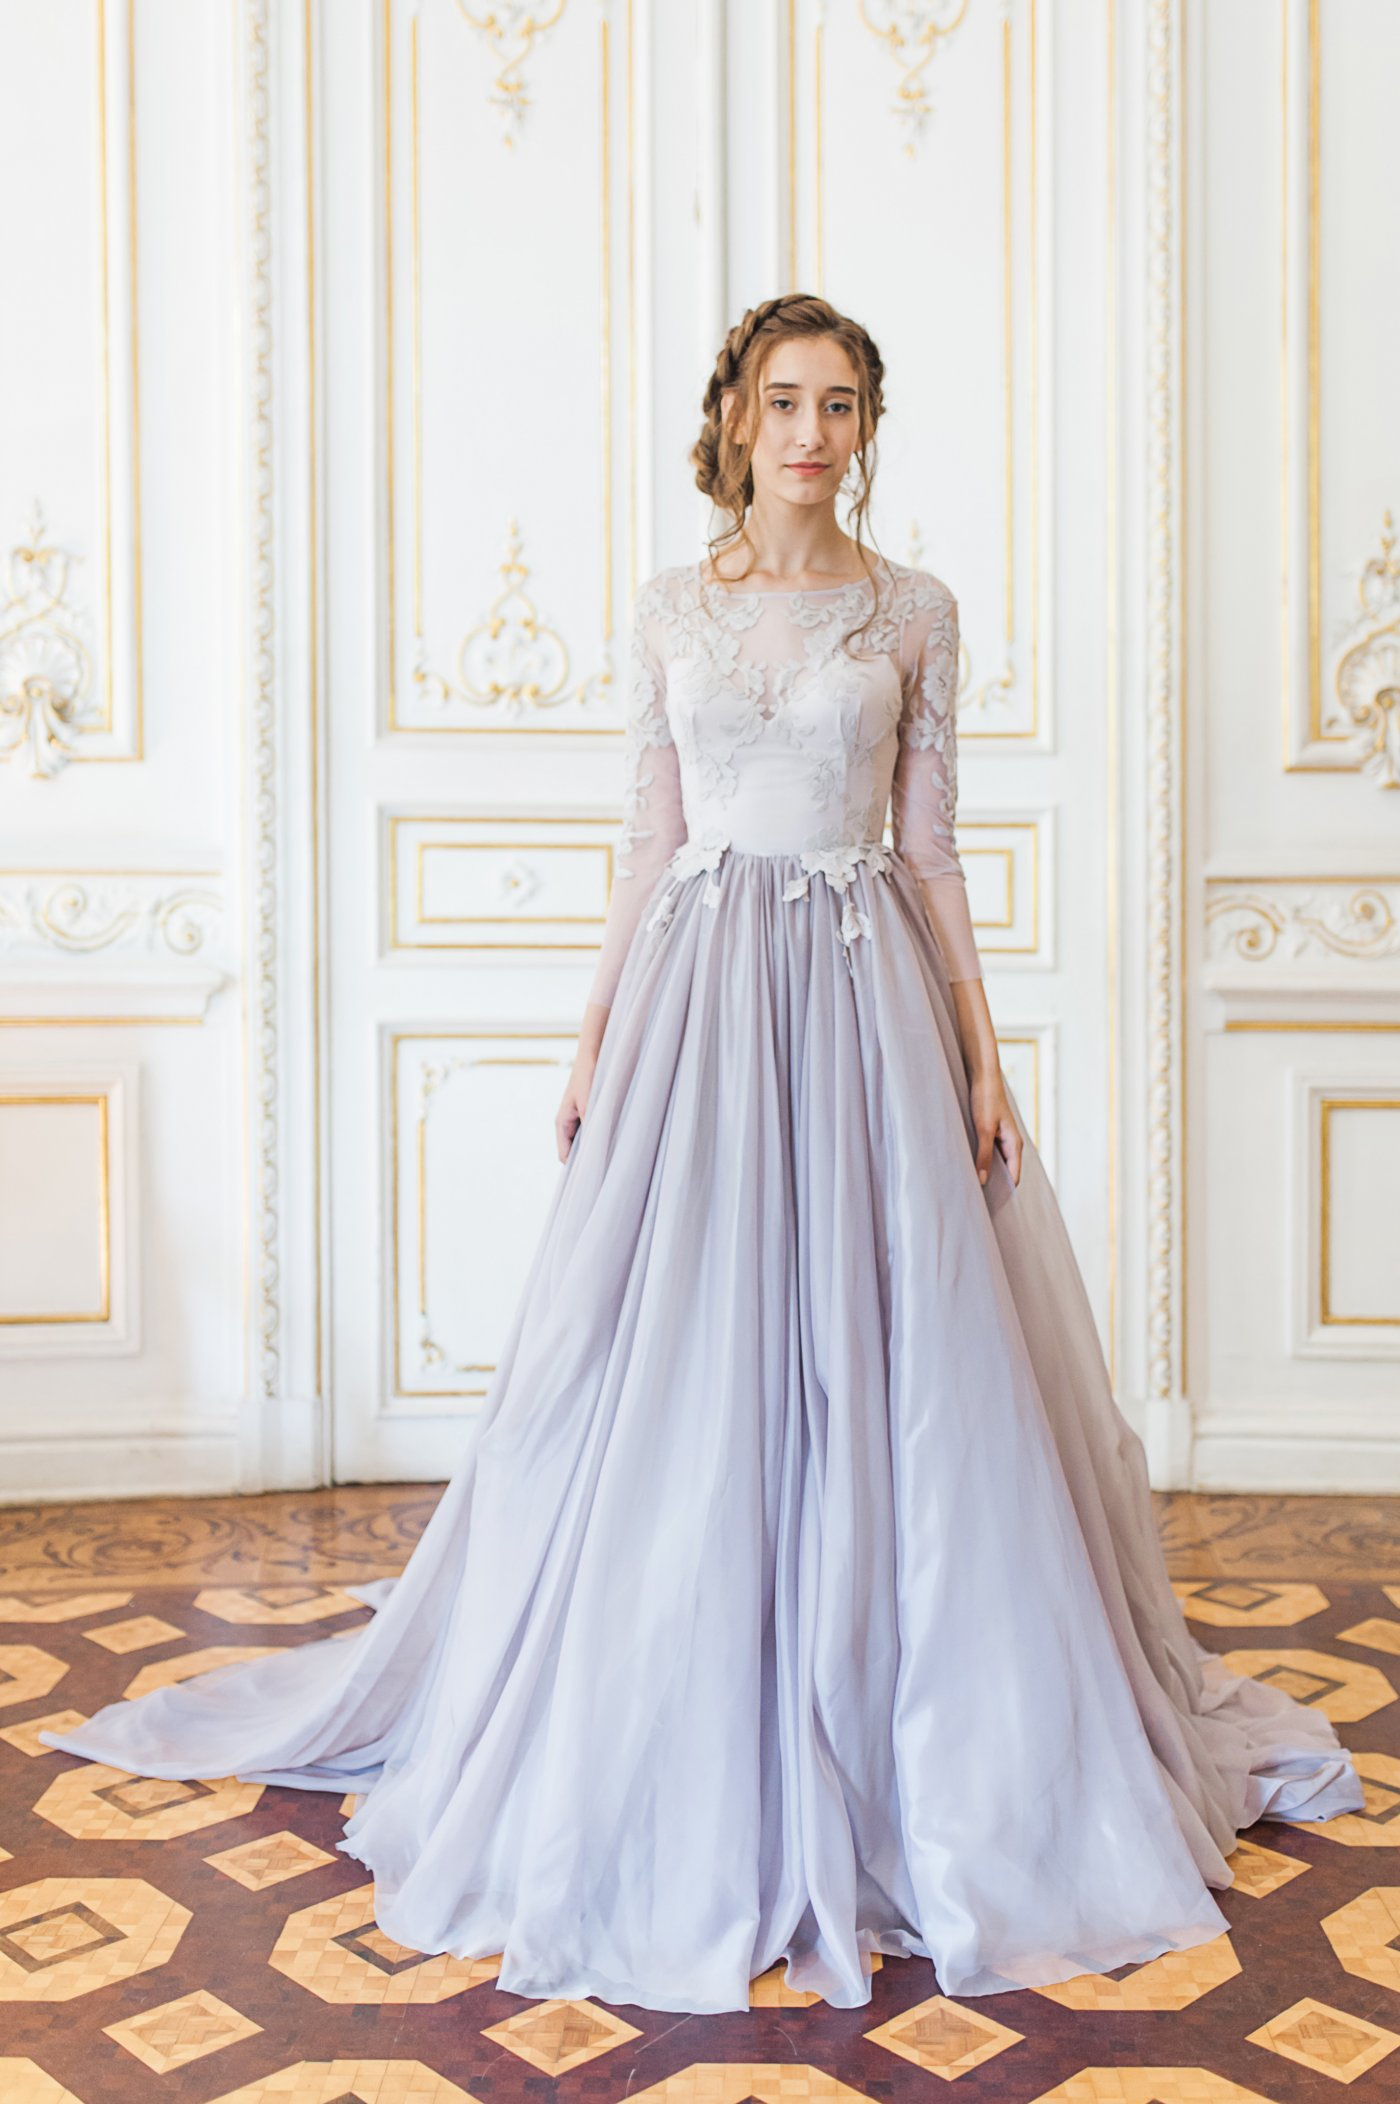 Lavender wedding gown with sheer sleeves and floral appliques ...